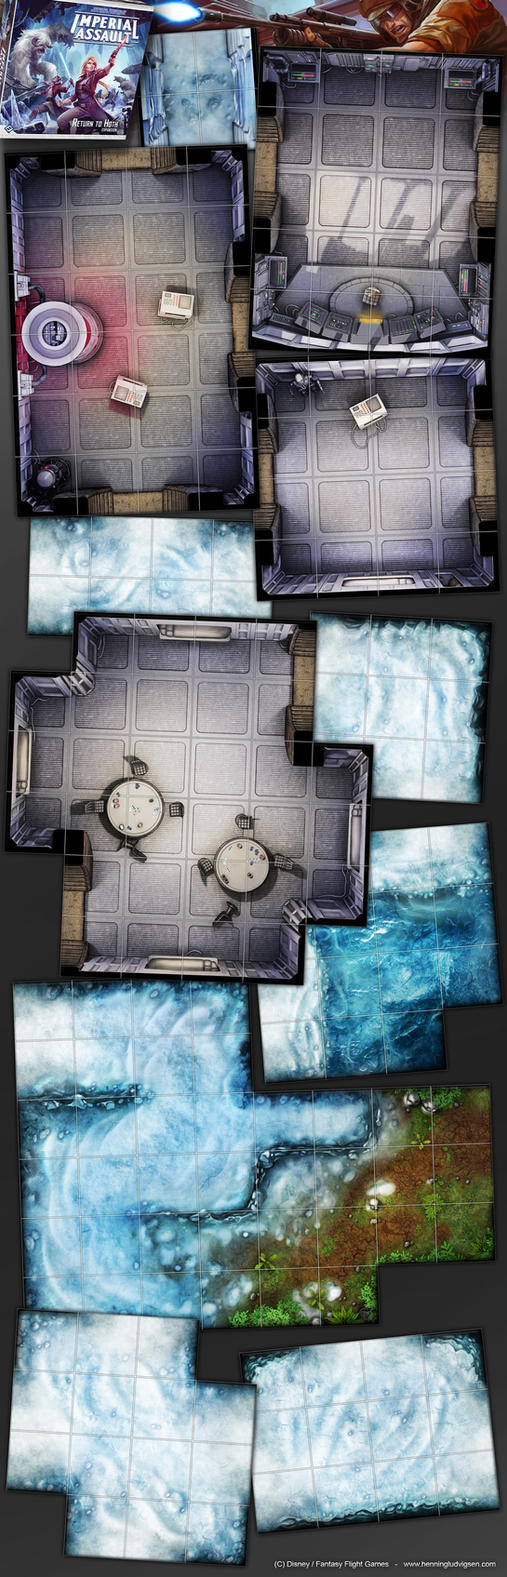 Star Wars, Imperial Assault, Return to Hoth 3 by henning